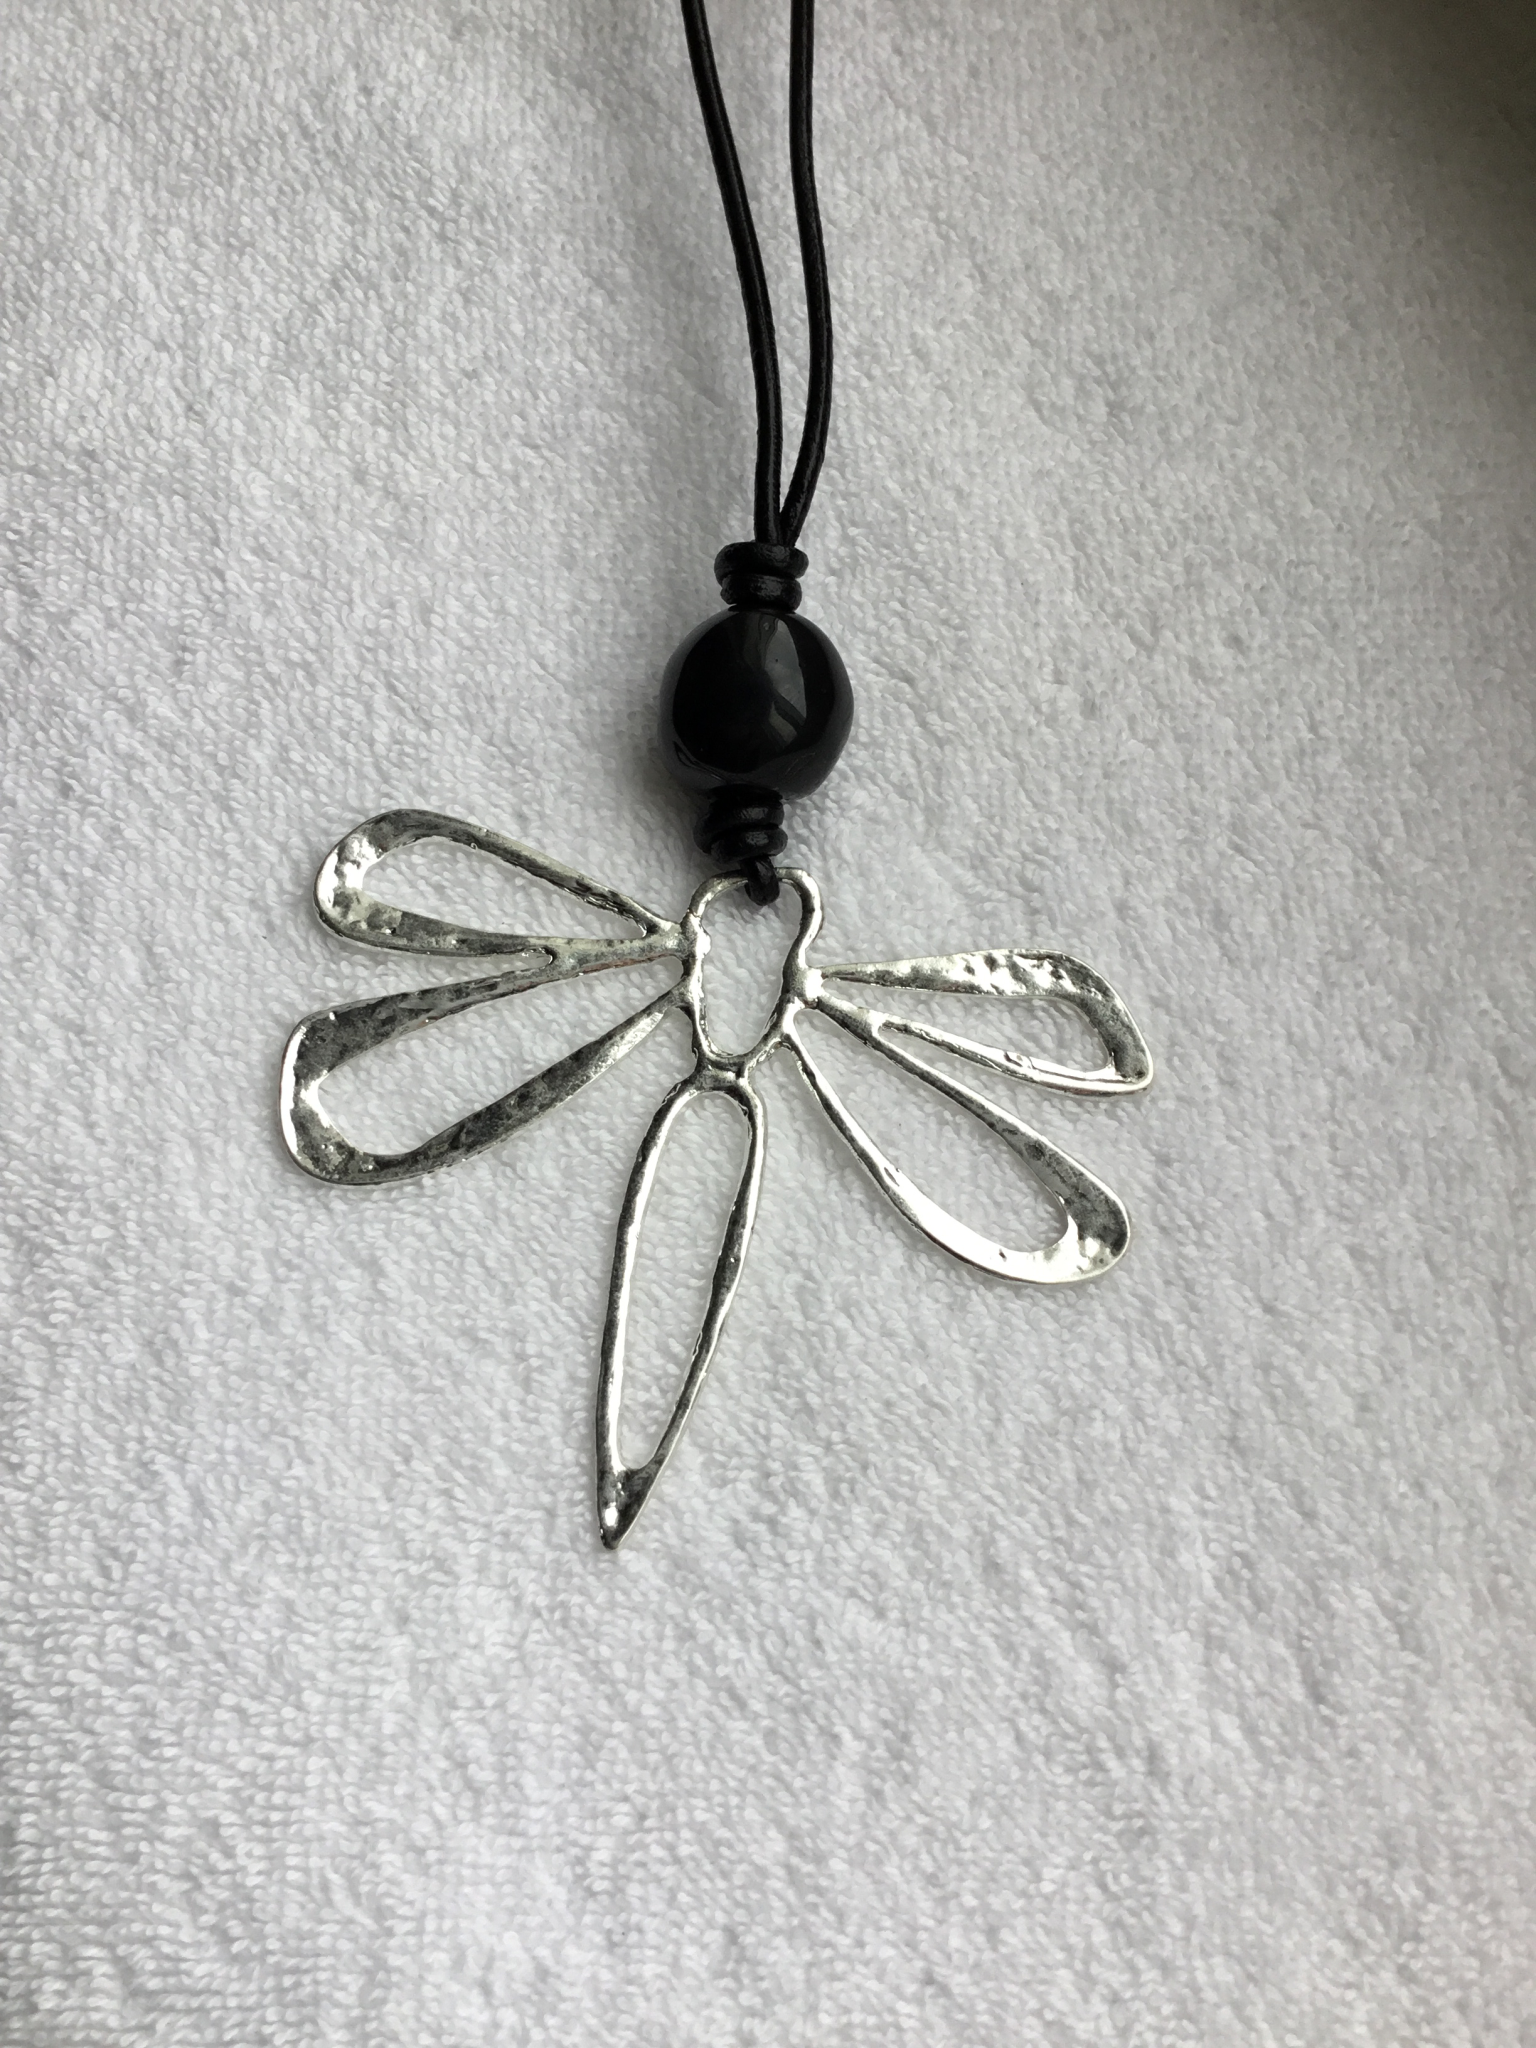 Dragonfly Metal Leather Long Necklace  JNL-005-6755